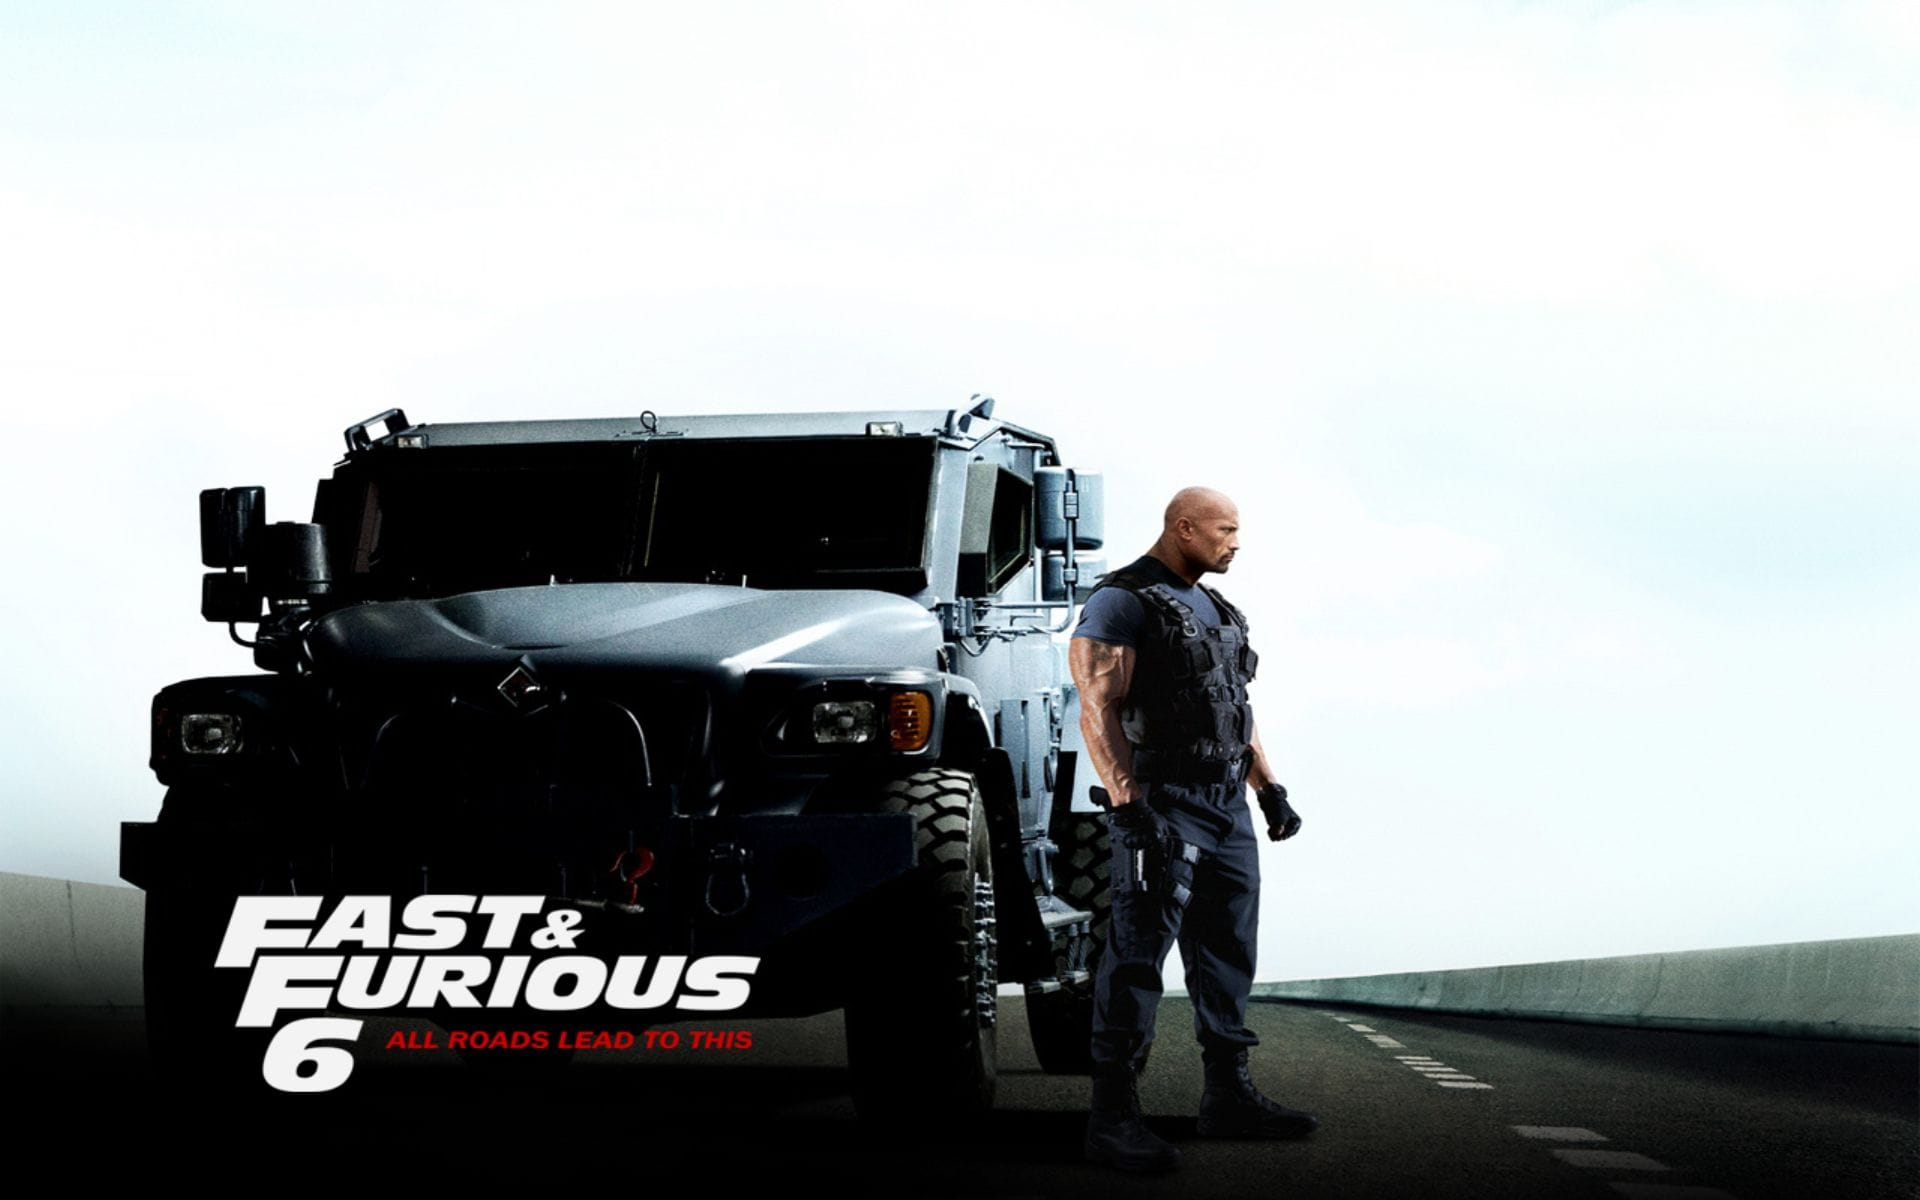 Fast & Furious 6 Backgrounds